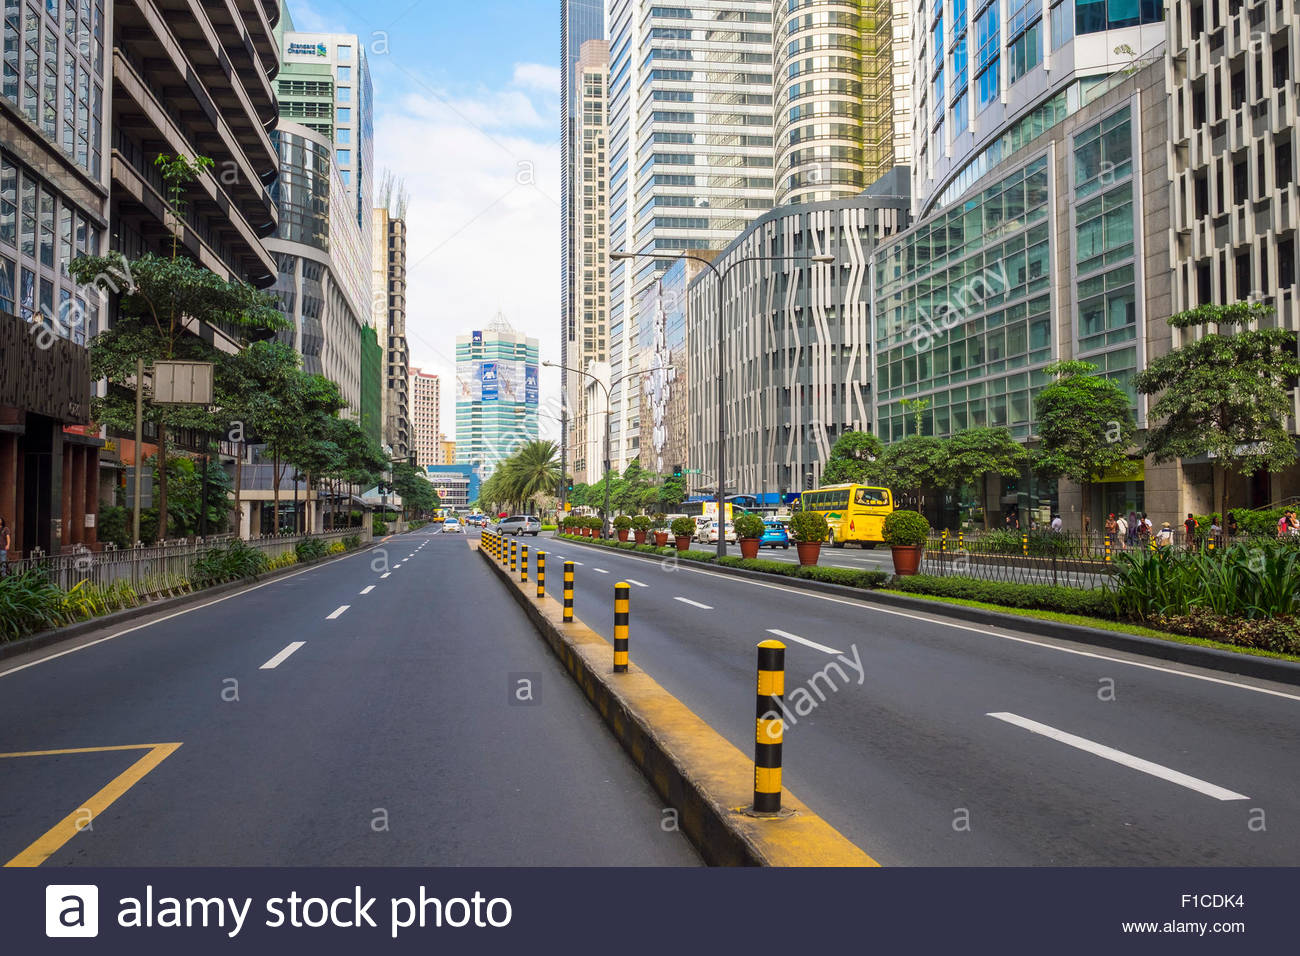 Ayala Avenue in Makati City financial district, Metro Manila, National Capitol Region, Philippines - Stock Image